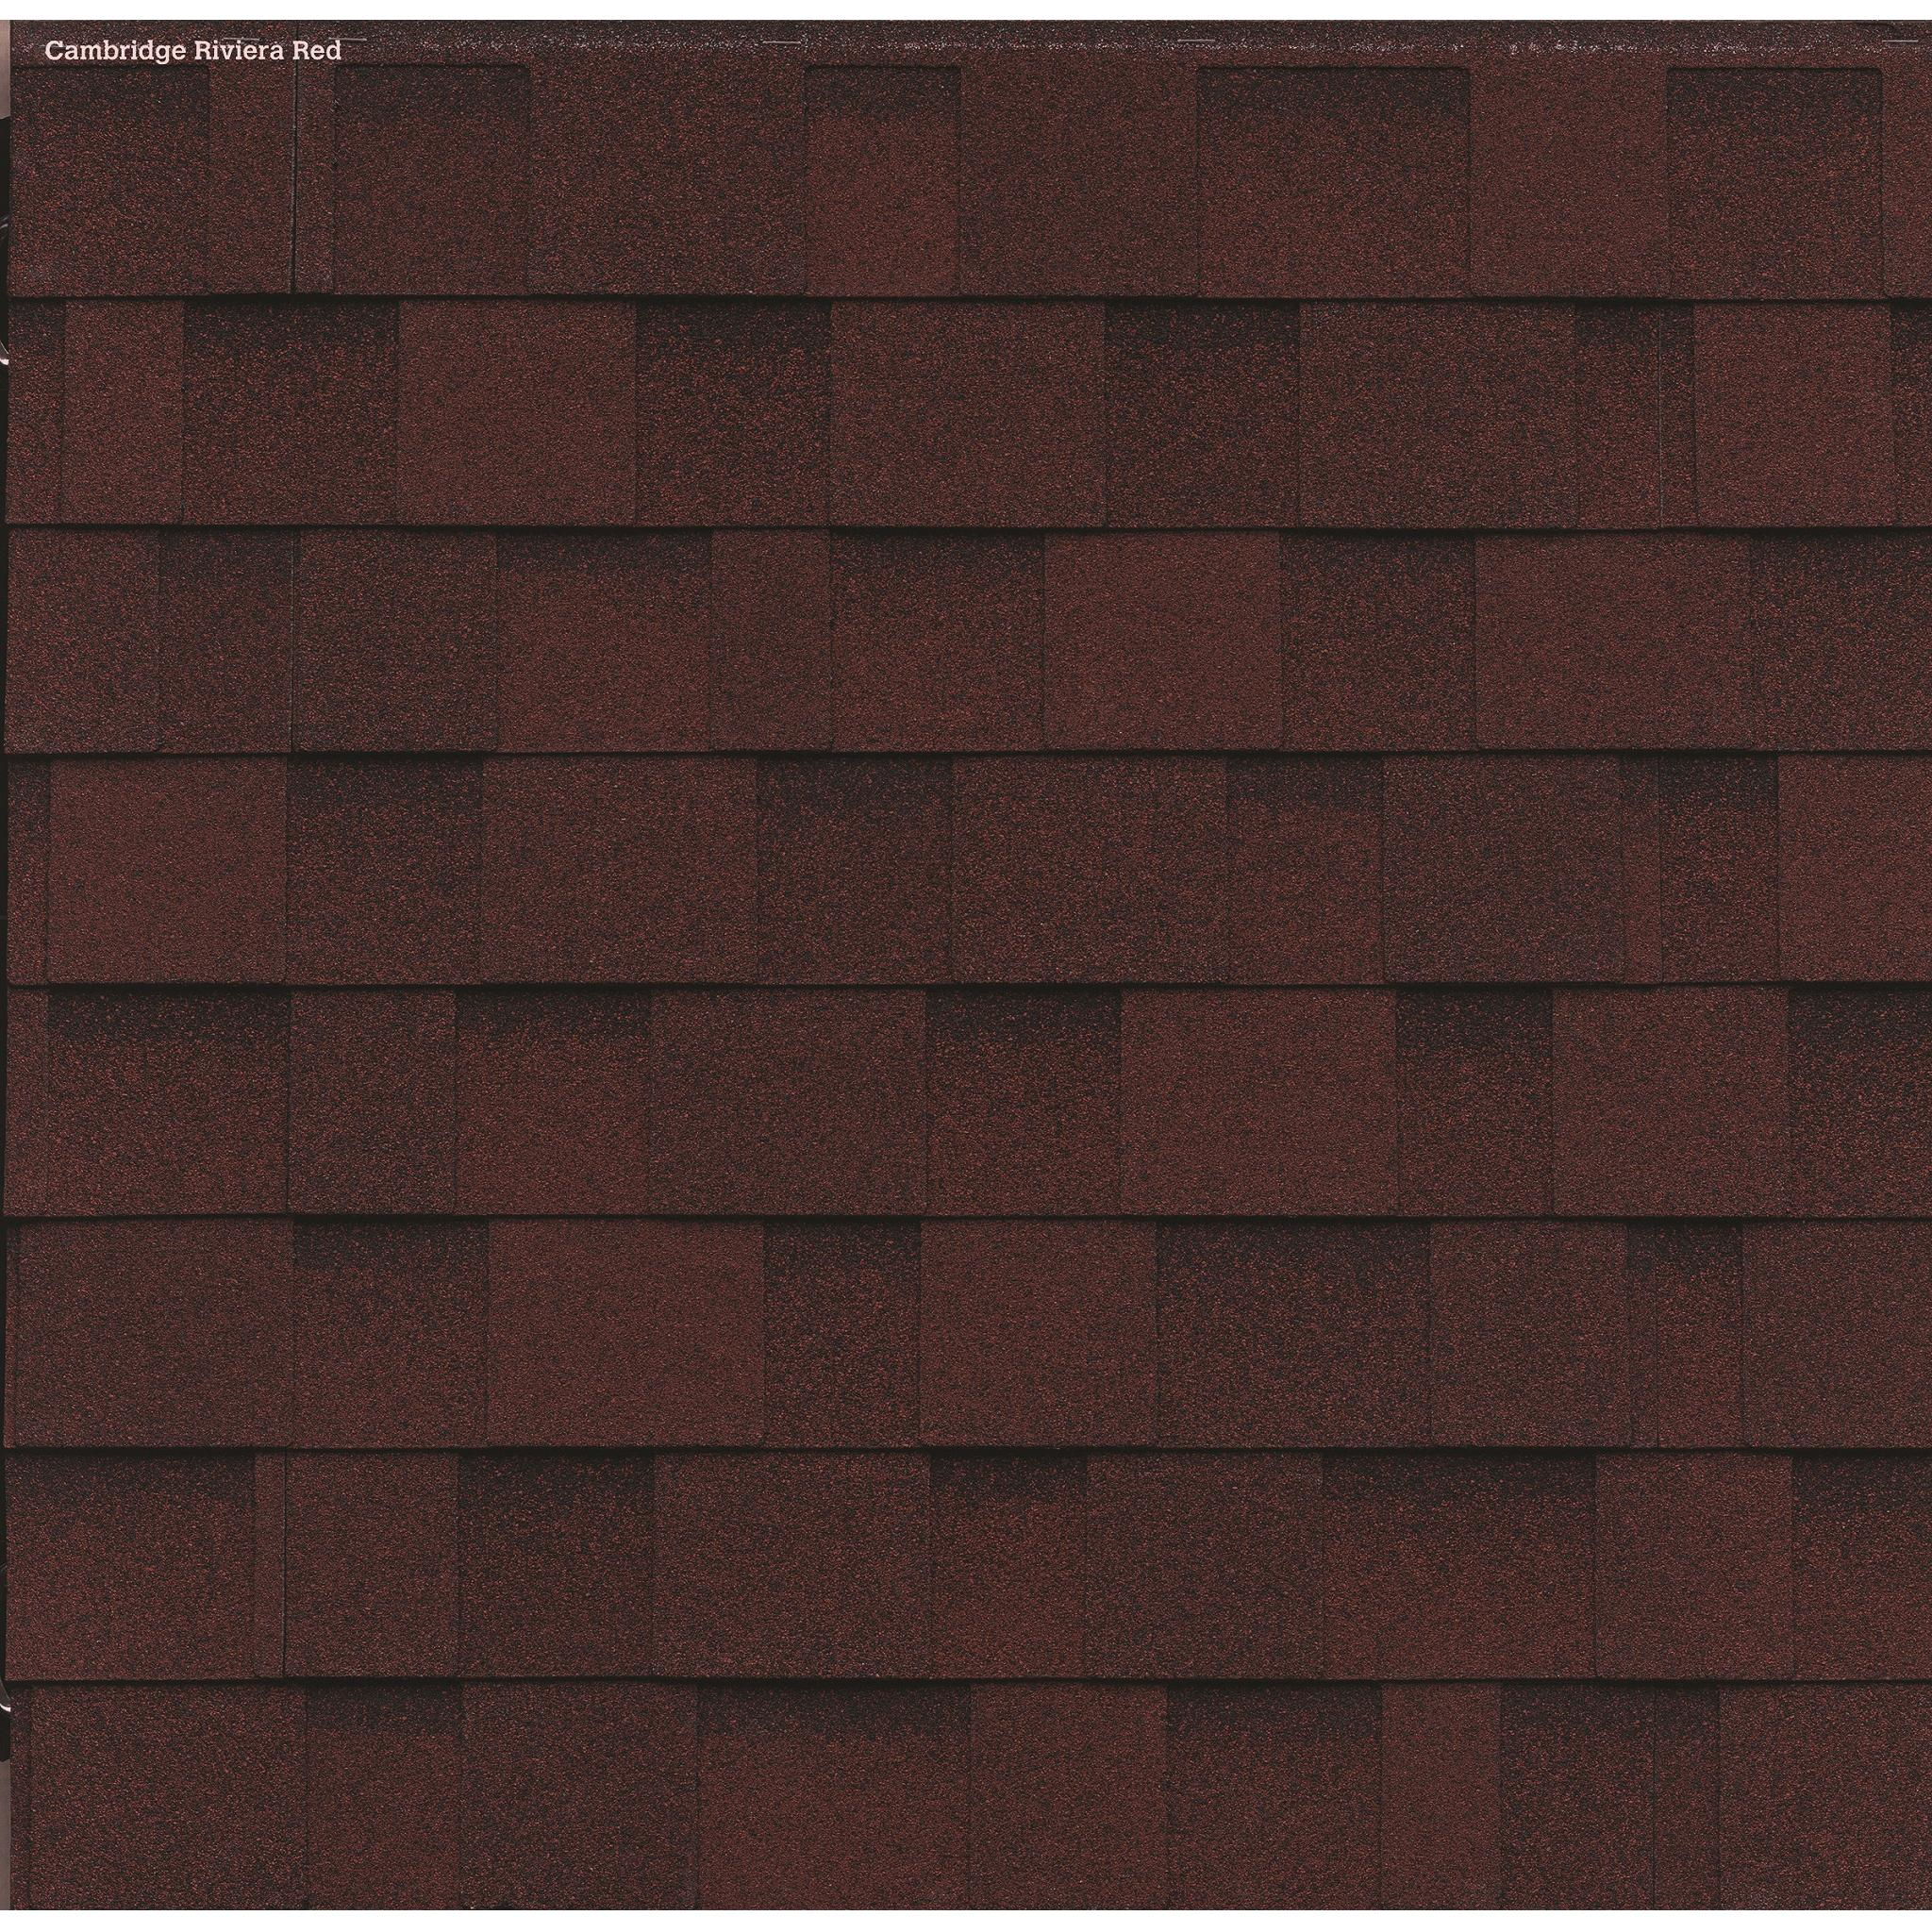 Crc Biltmore Shingles Biltmore Reviera Red Eurotech Roofing Supply